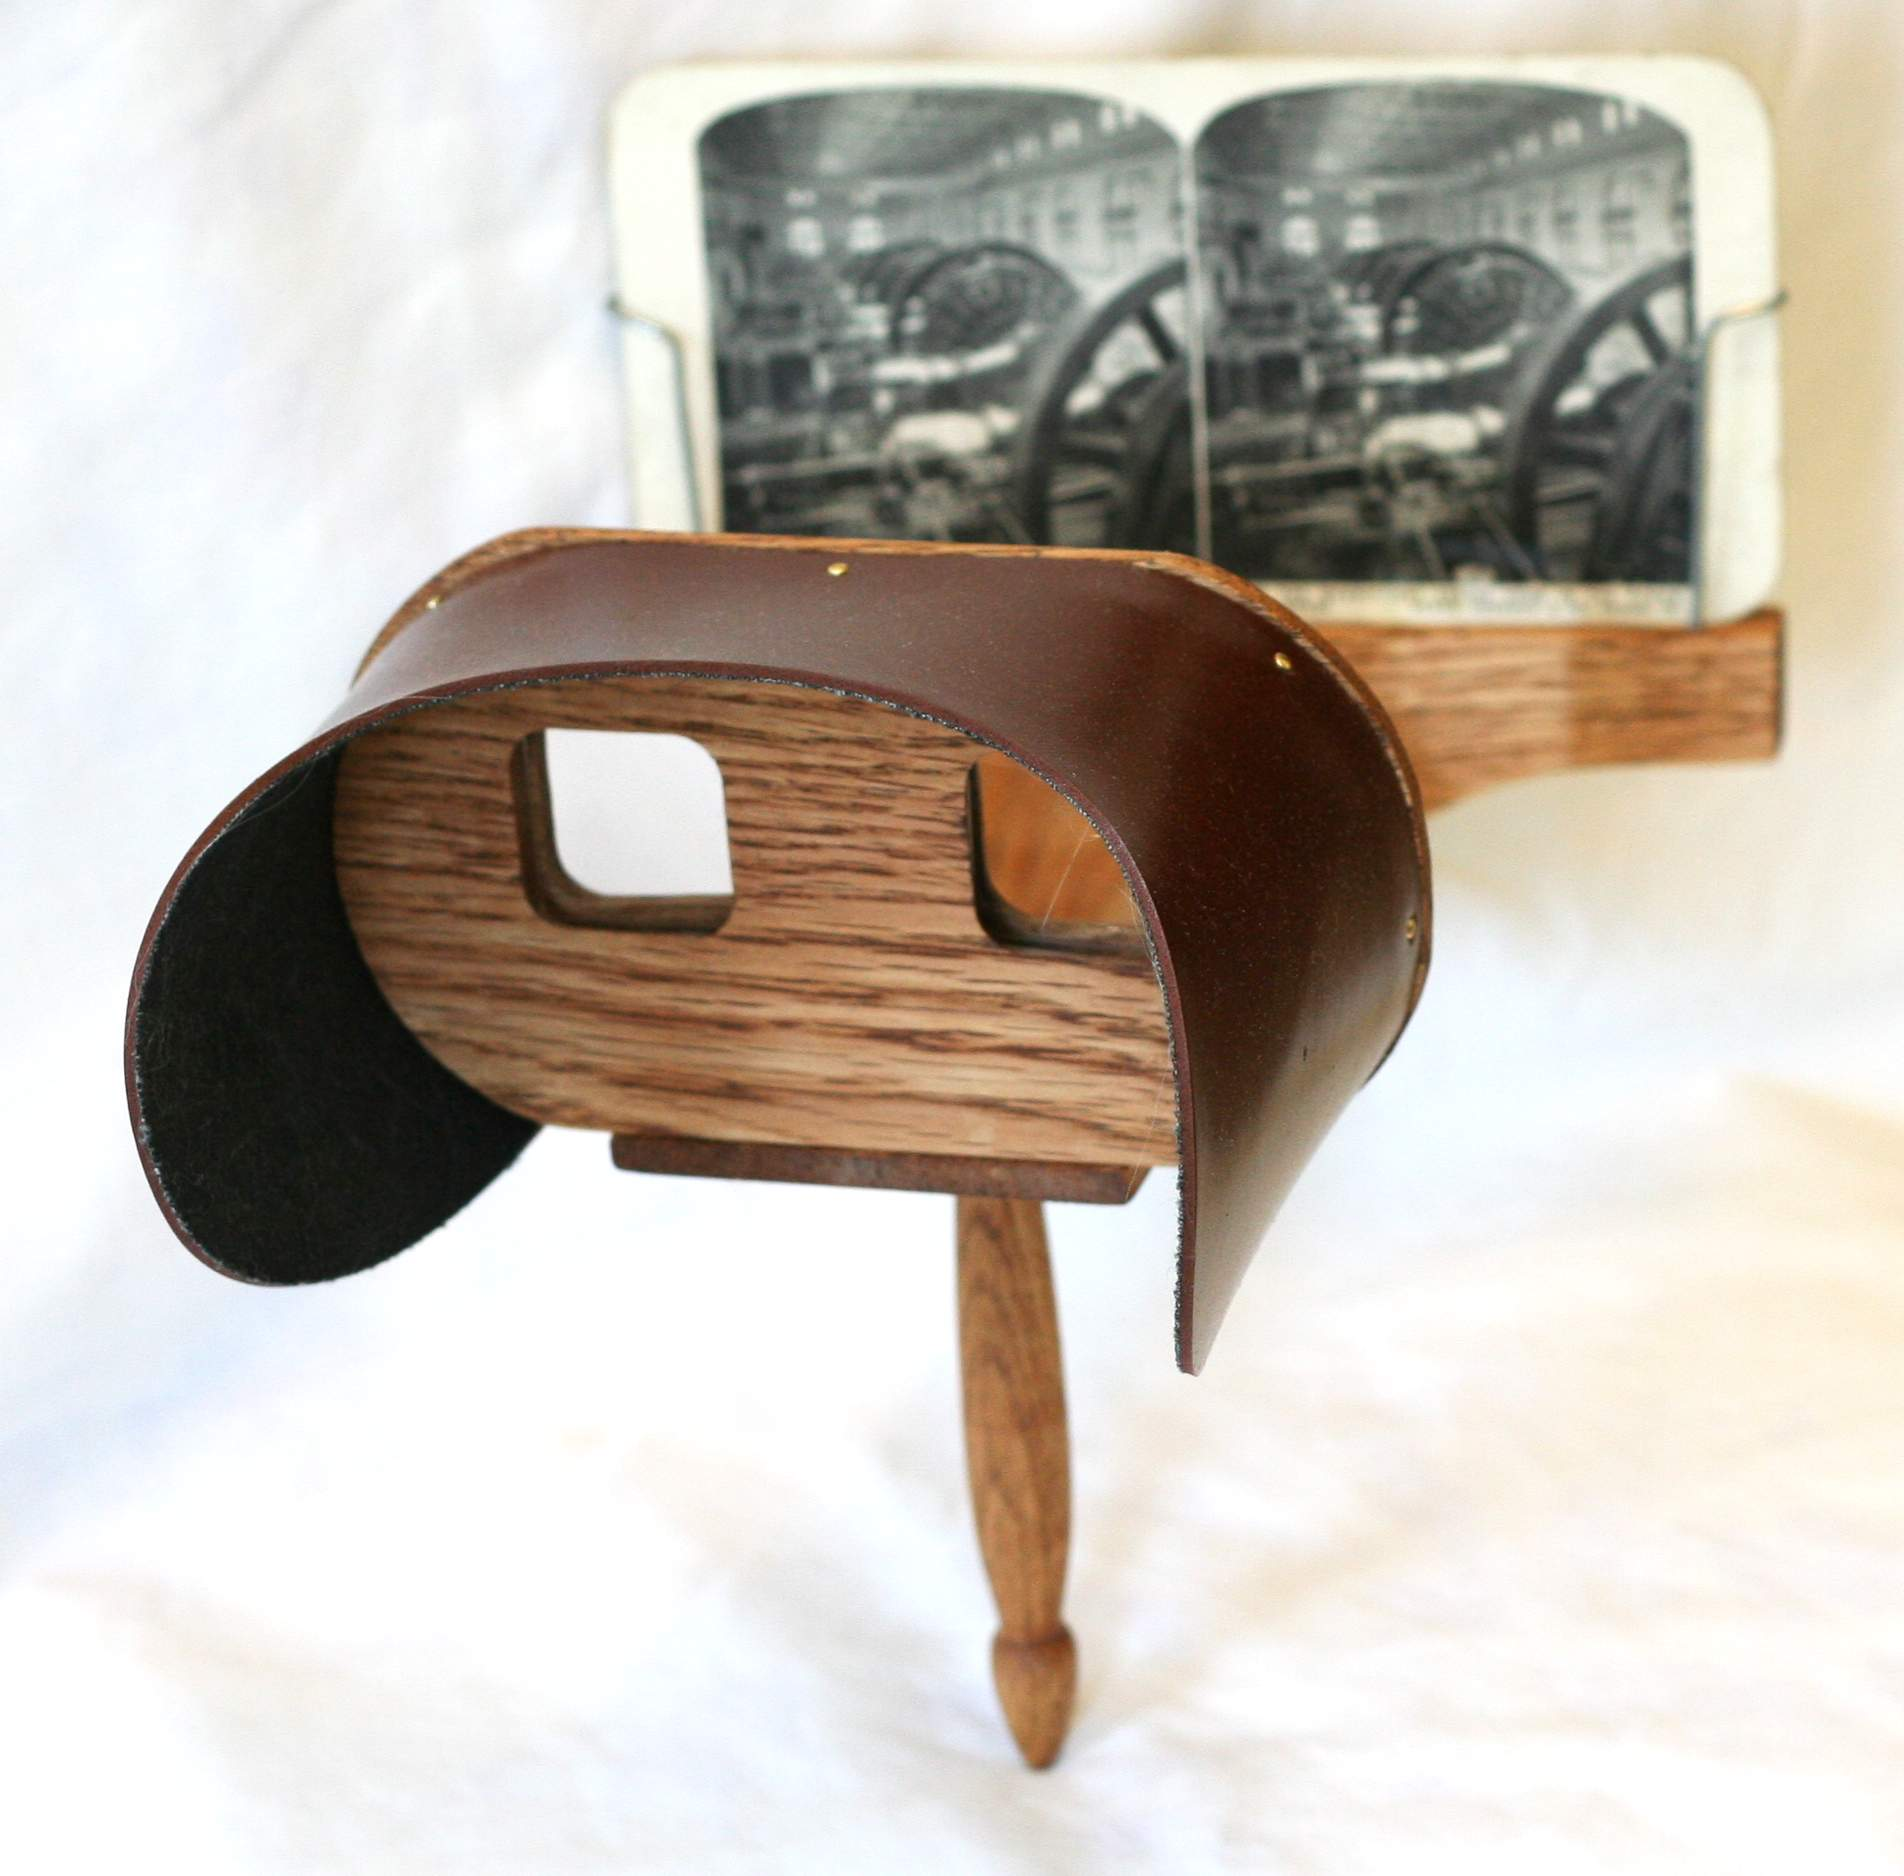 The Stereoscope Revival - At a time when photography has become cheapened by its proliferation, the rebirth of the stereoscope may help to revitalize what made photography so precious and so powerful in its early days, when it introduced an entirely new way of seeing people, places, and things. But that potential also carries some risks. (The Boston Globe)